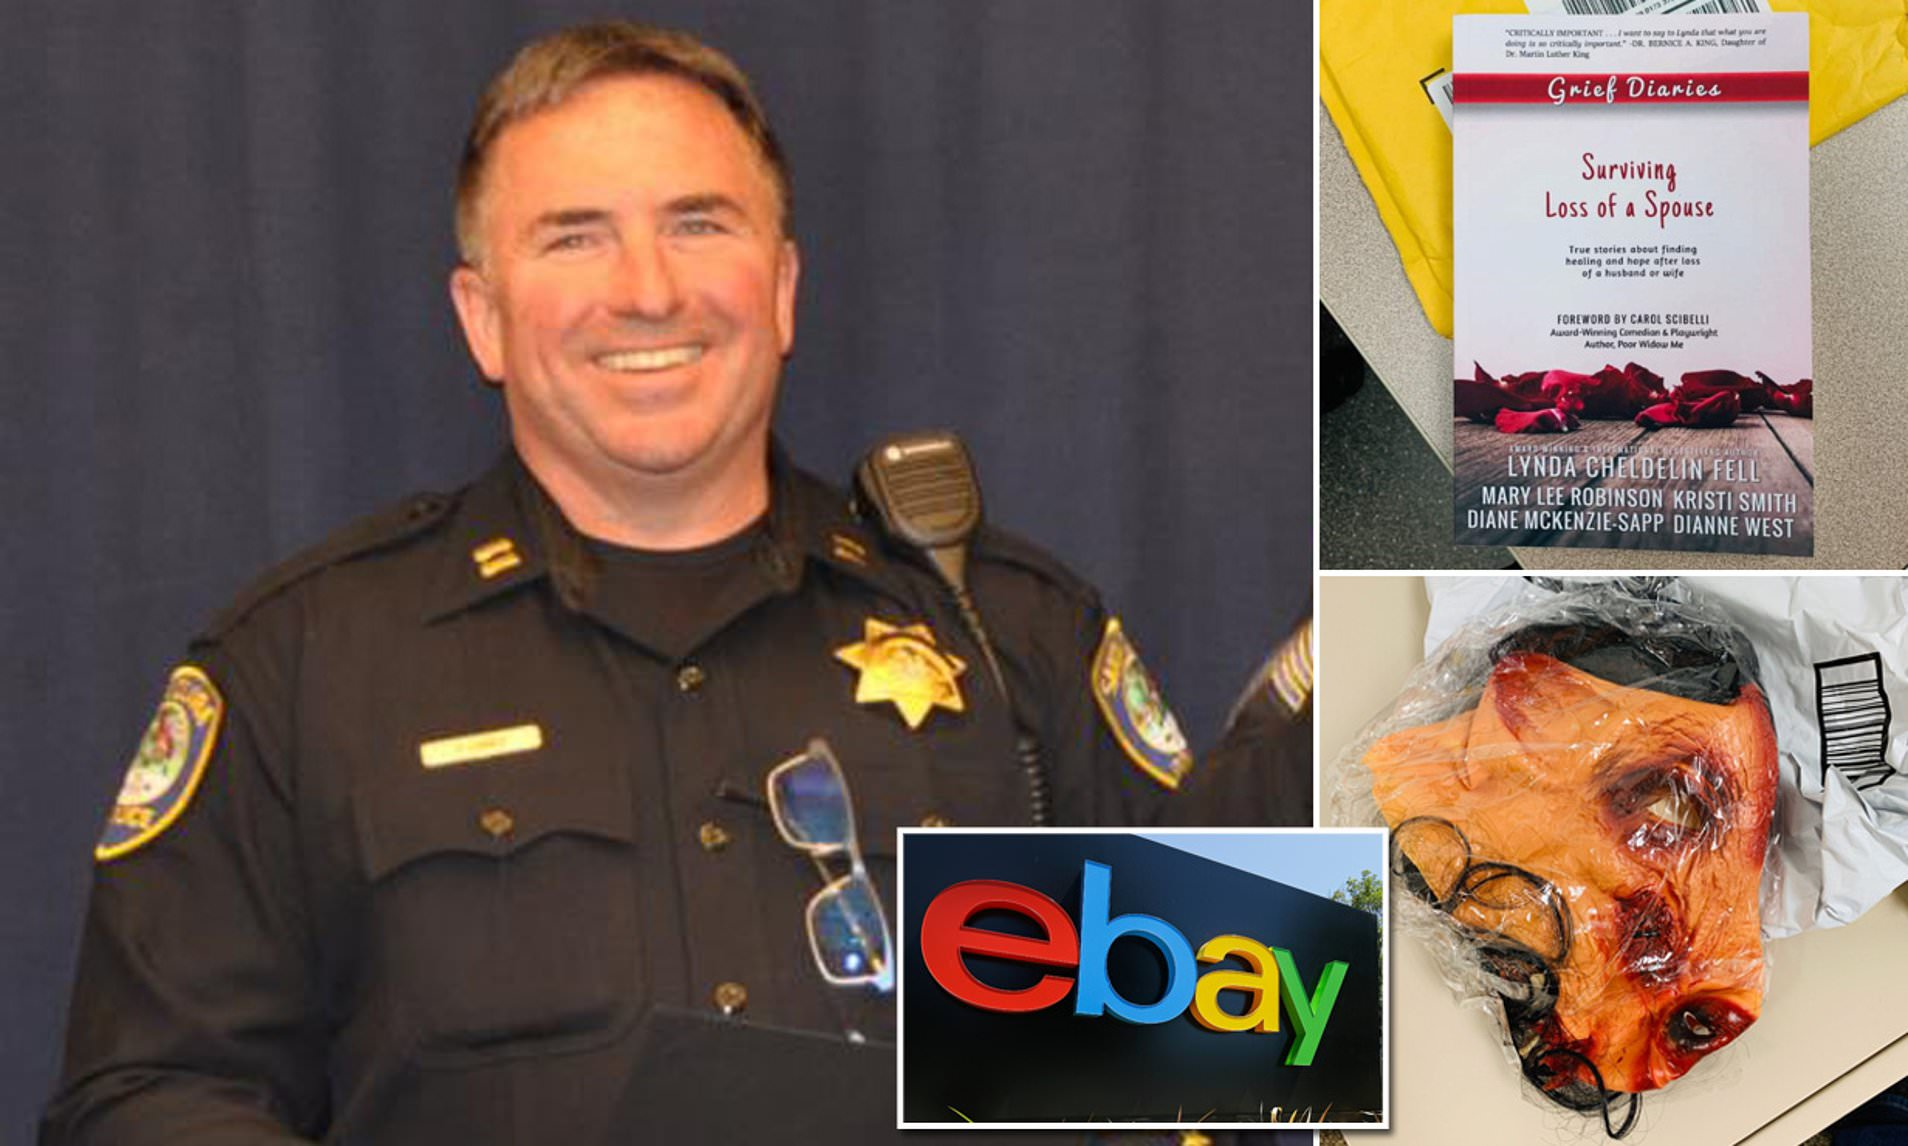 Ebay official jailed after sending dead pig fetus to critics of company